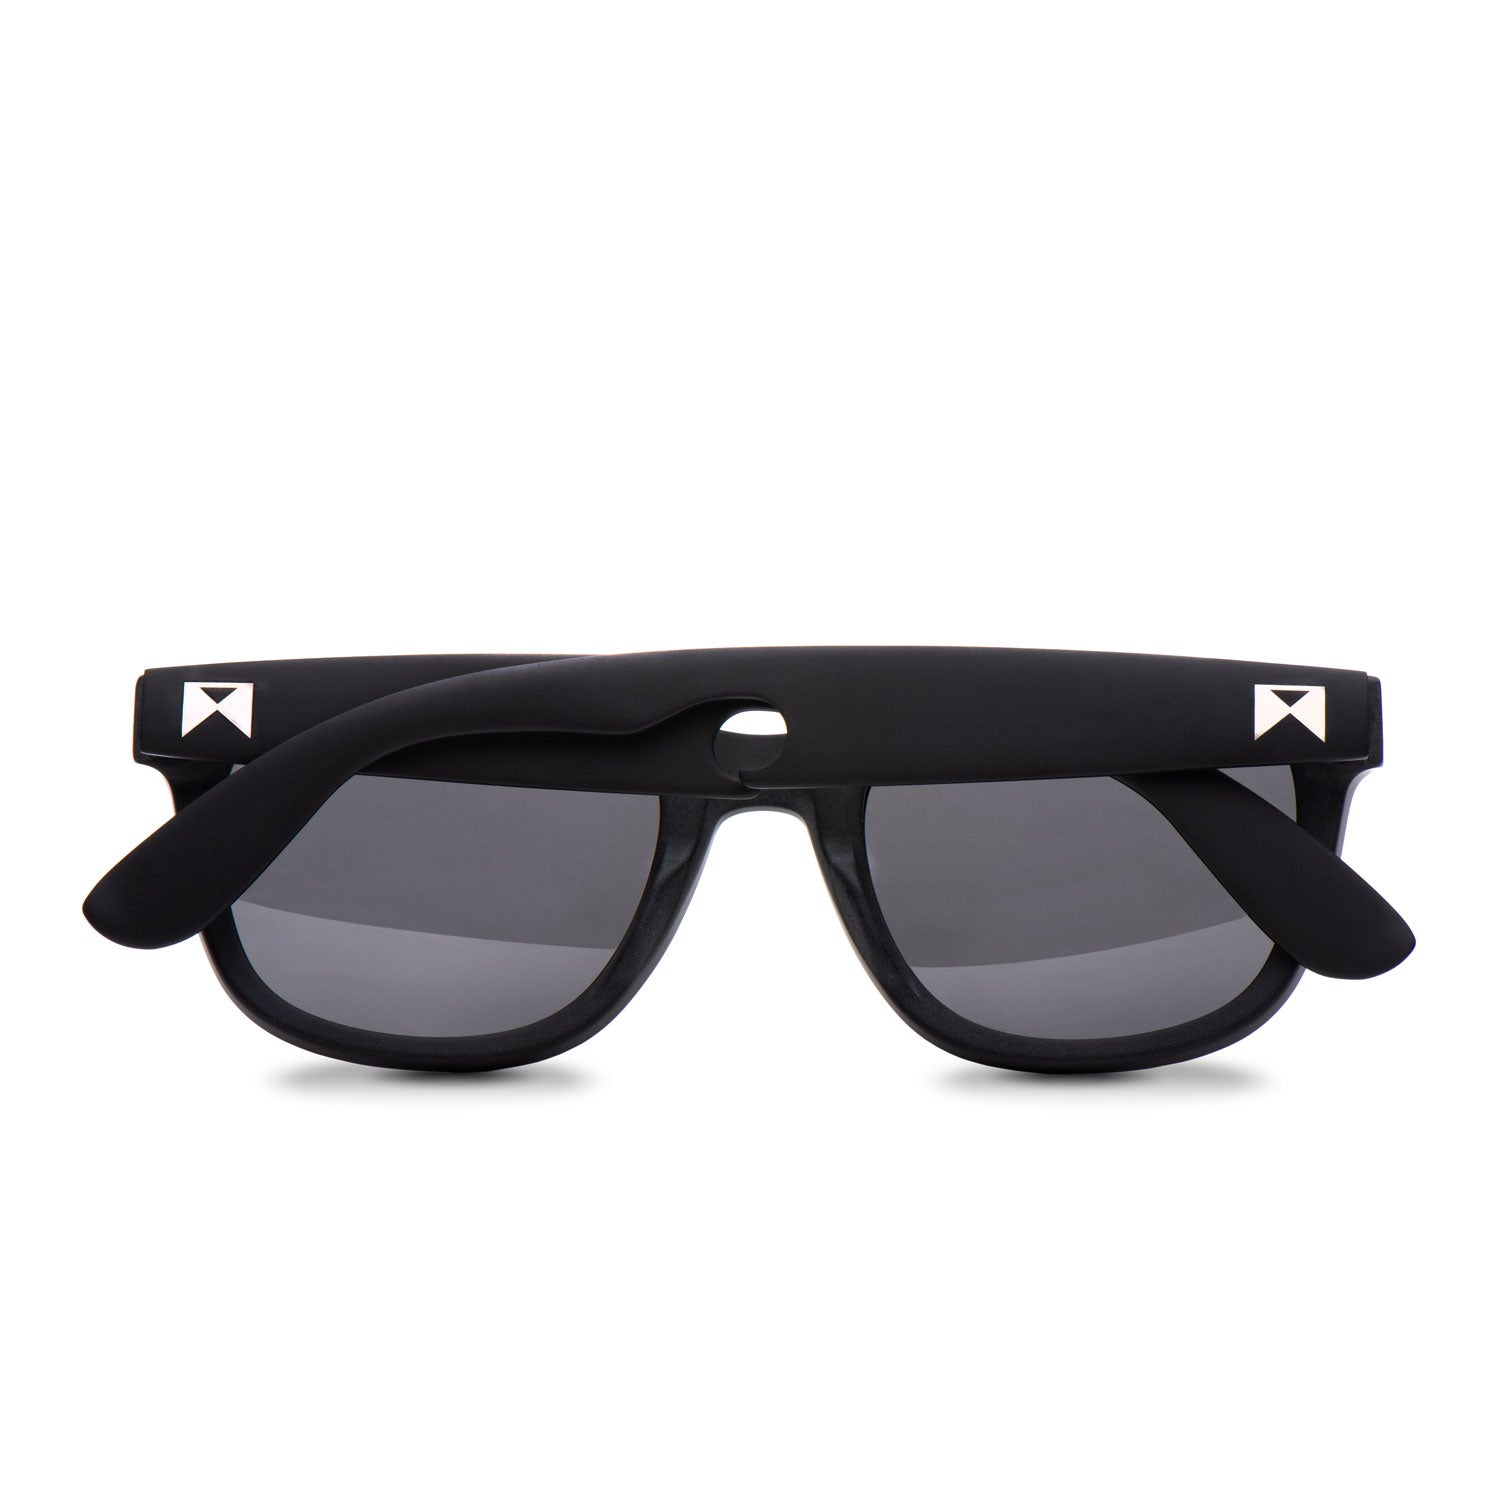 110ac5663d385 Titanium Sunglasses by William Painter